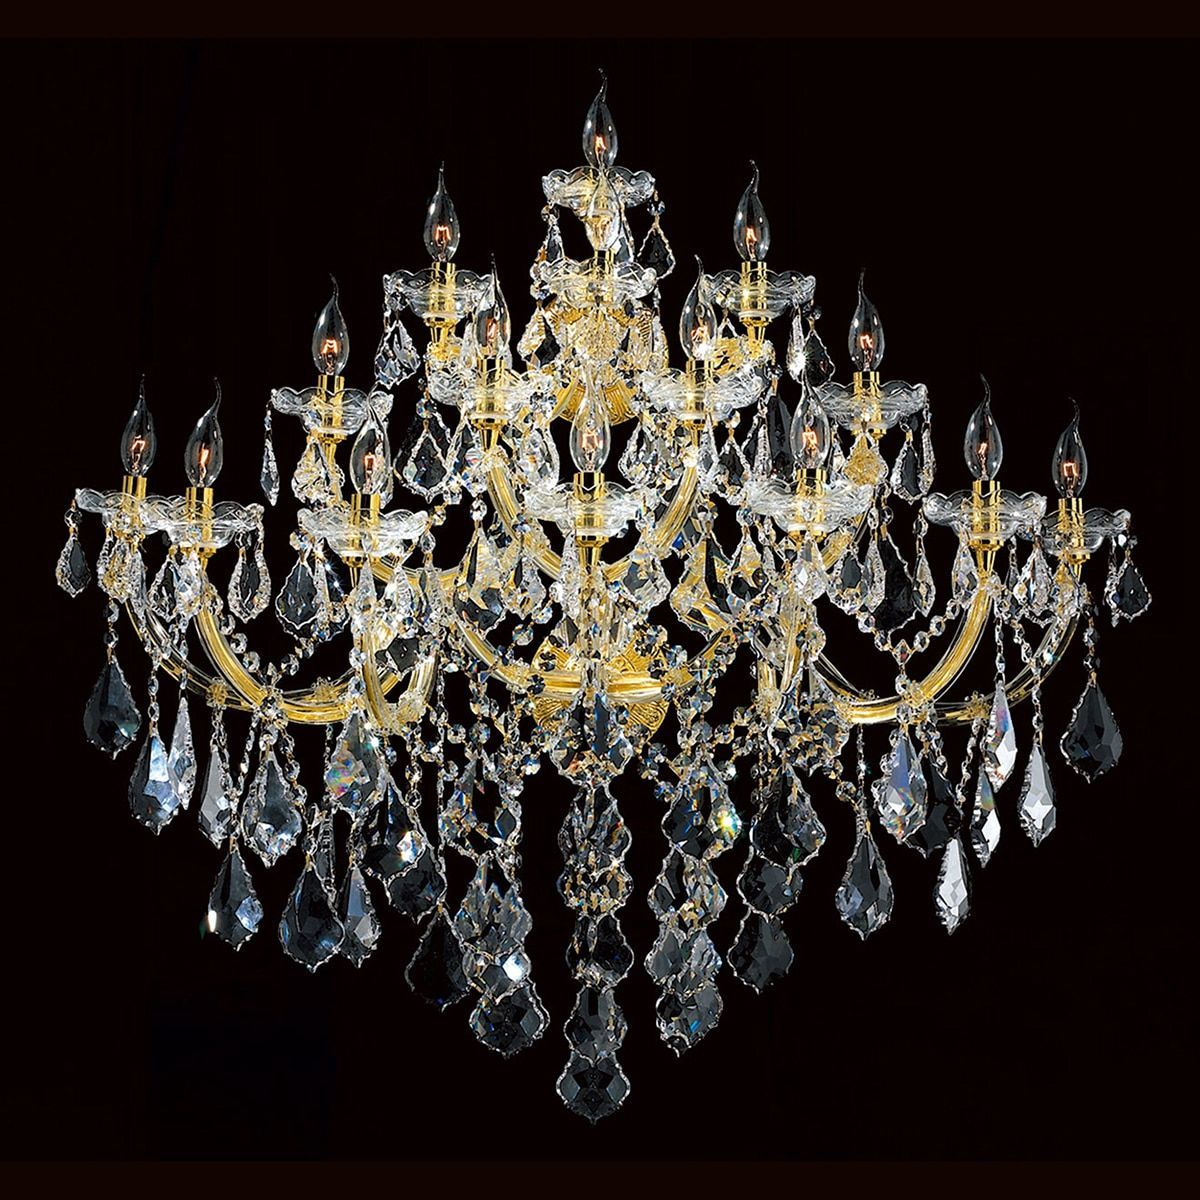 Maria Theresa 15-light Gold Finish Large and Crystal Candle 4-tier 40-inch Wide Extra Large Wall Sconce | Overstock.com Shopping – The Best Deals on Sconces